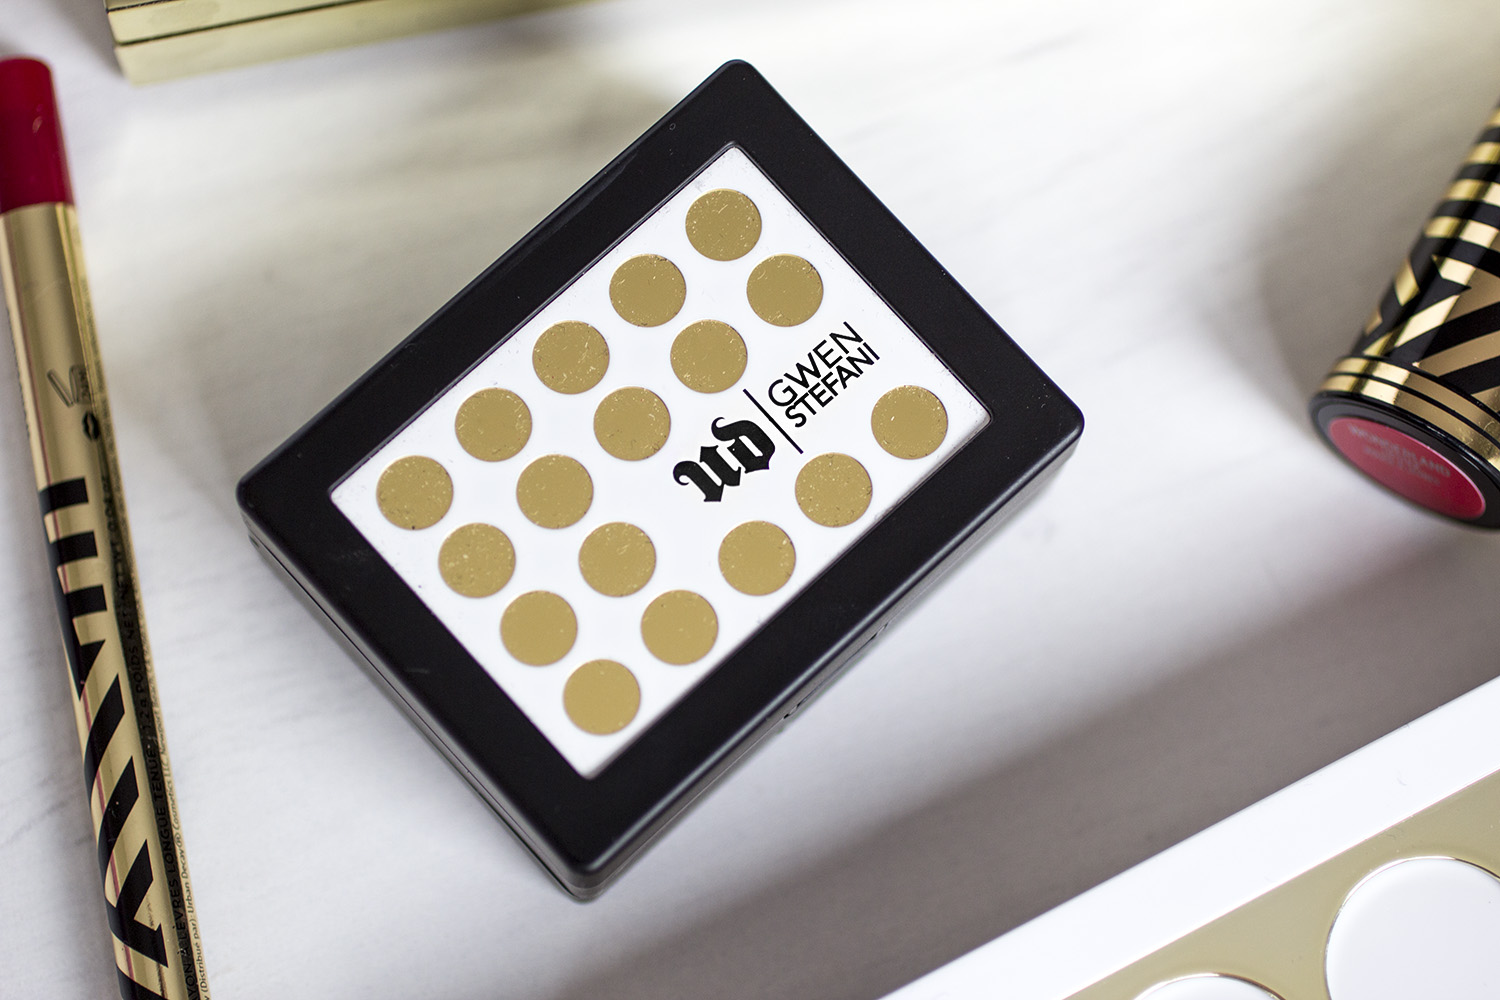 Gwen Stefani x Urban Decay / Brow Box Blonde